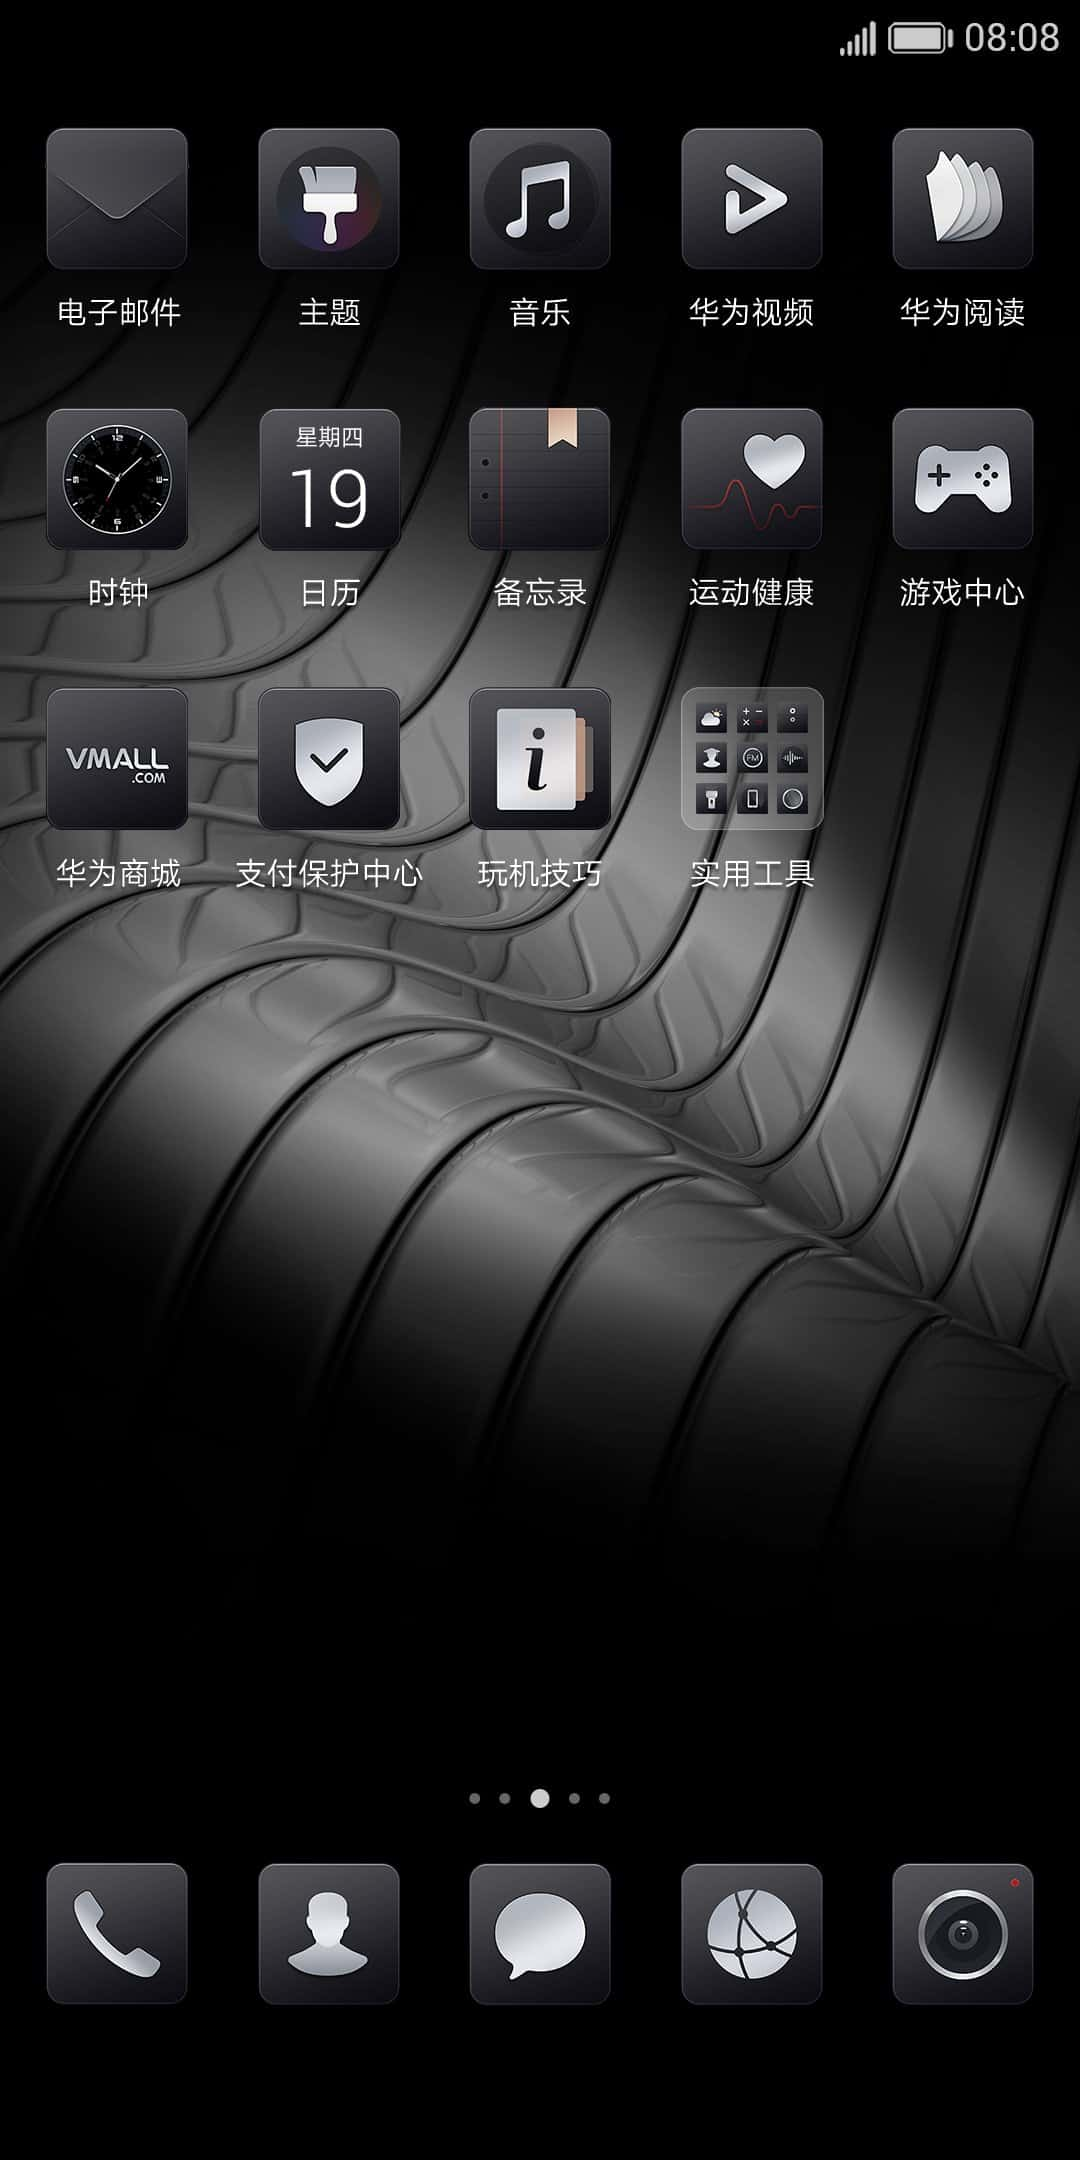 Chic emui 6.0 theme 2 - Download Huawei Mate 10 Stock Themes, EMUI 8.0 Themes